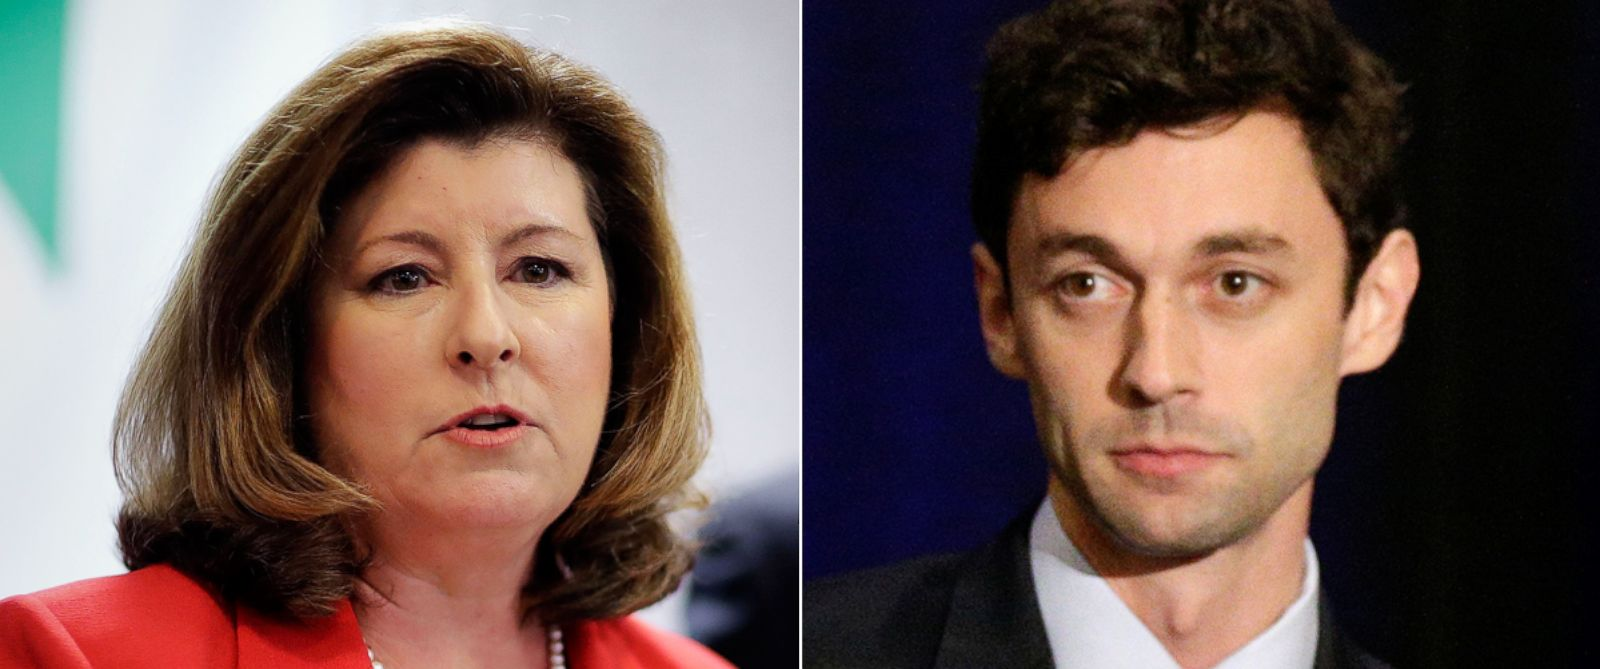 PHOTO: Candidates for Georgias Sixth Congressional seat Karen Handel, left, and Jon Ossoff, right.